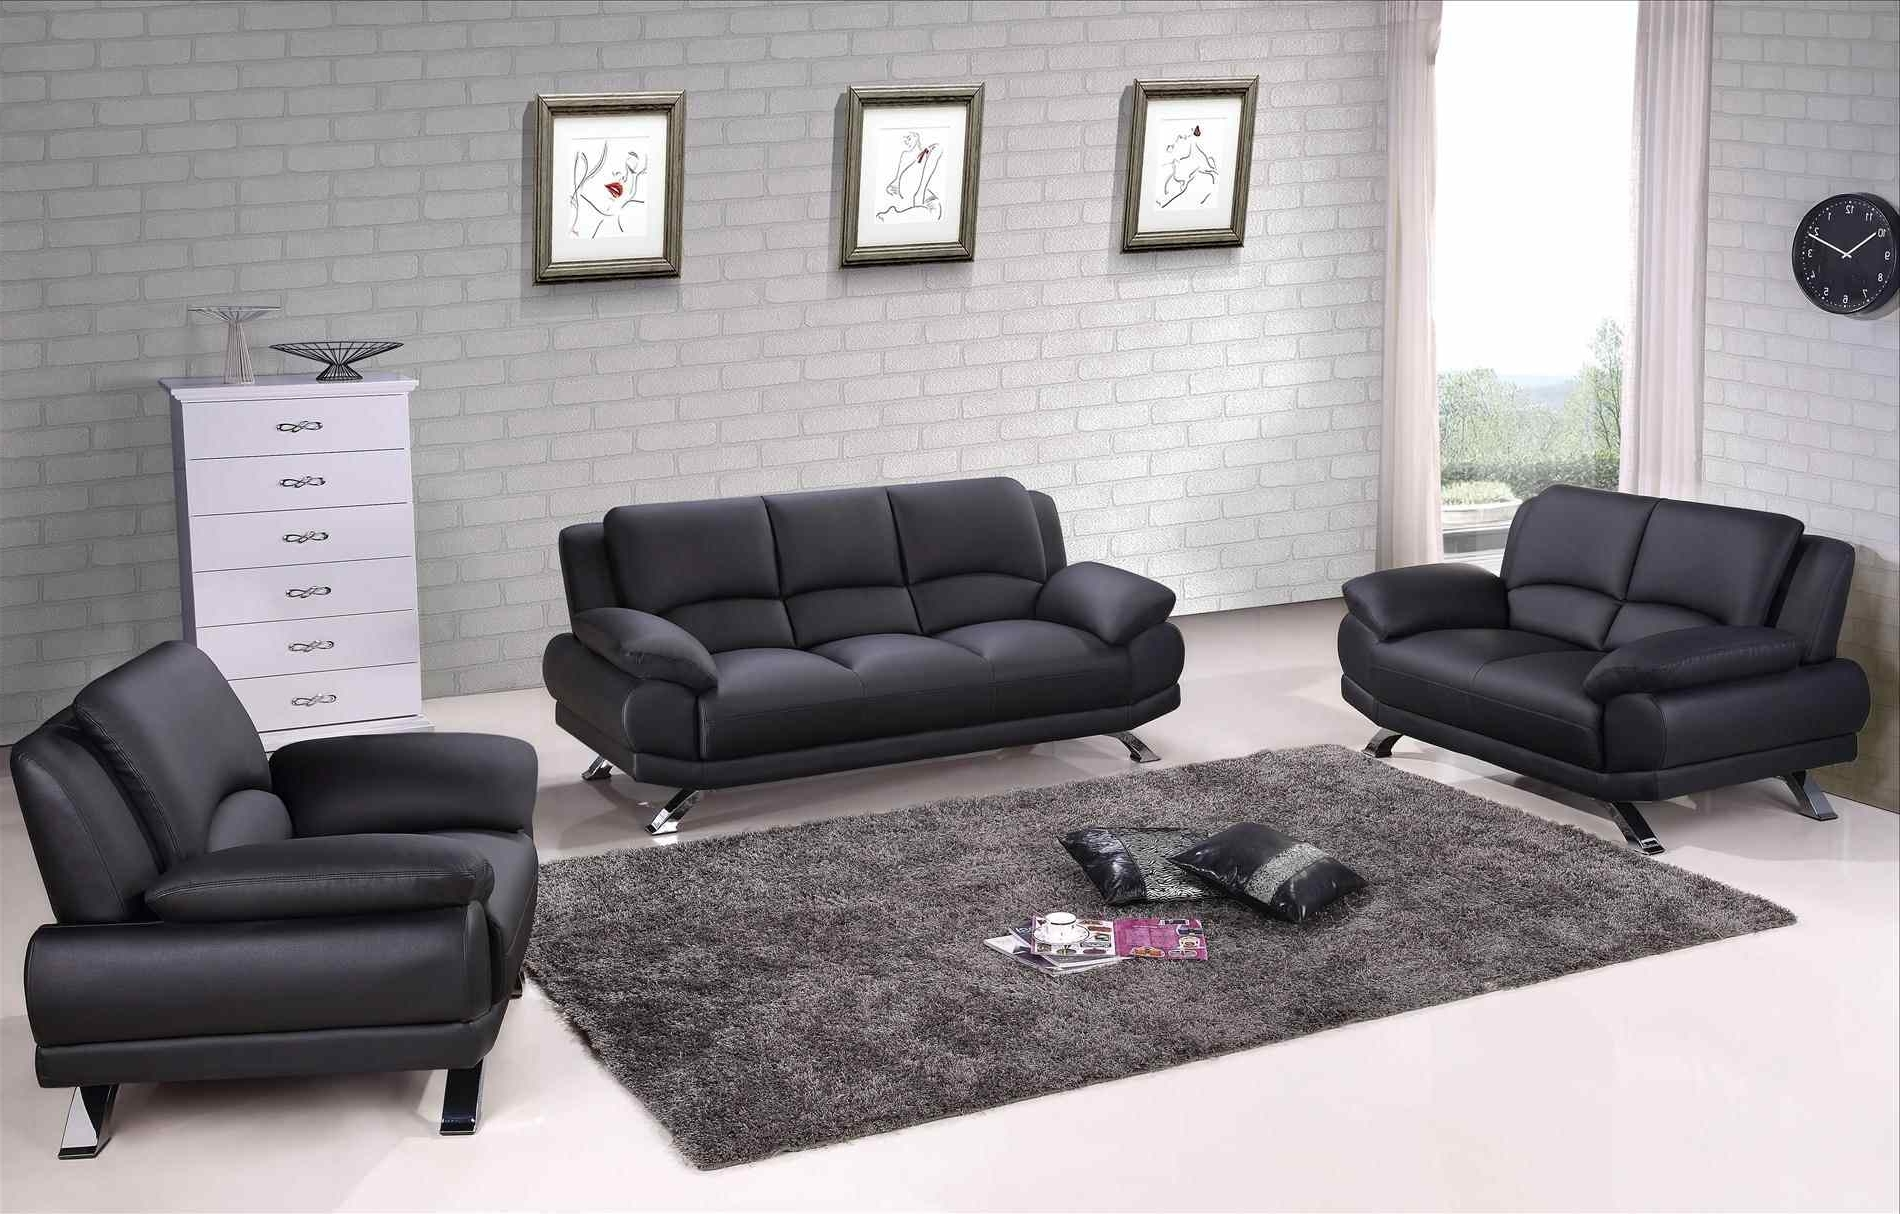 Nj Sectional Sofas Intended For Well Known Couch : Genuine Leather Couches Kramfors Lshape Sectional Youtube (View 10 of 15)